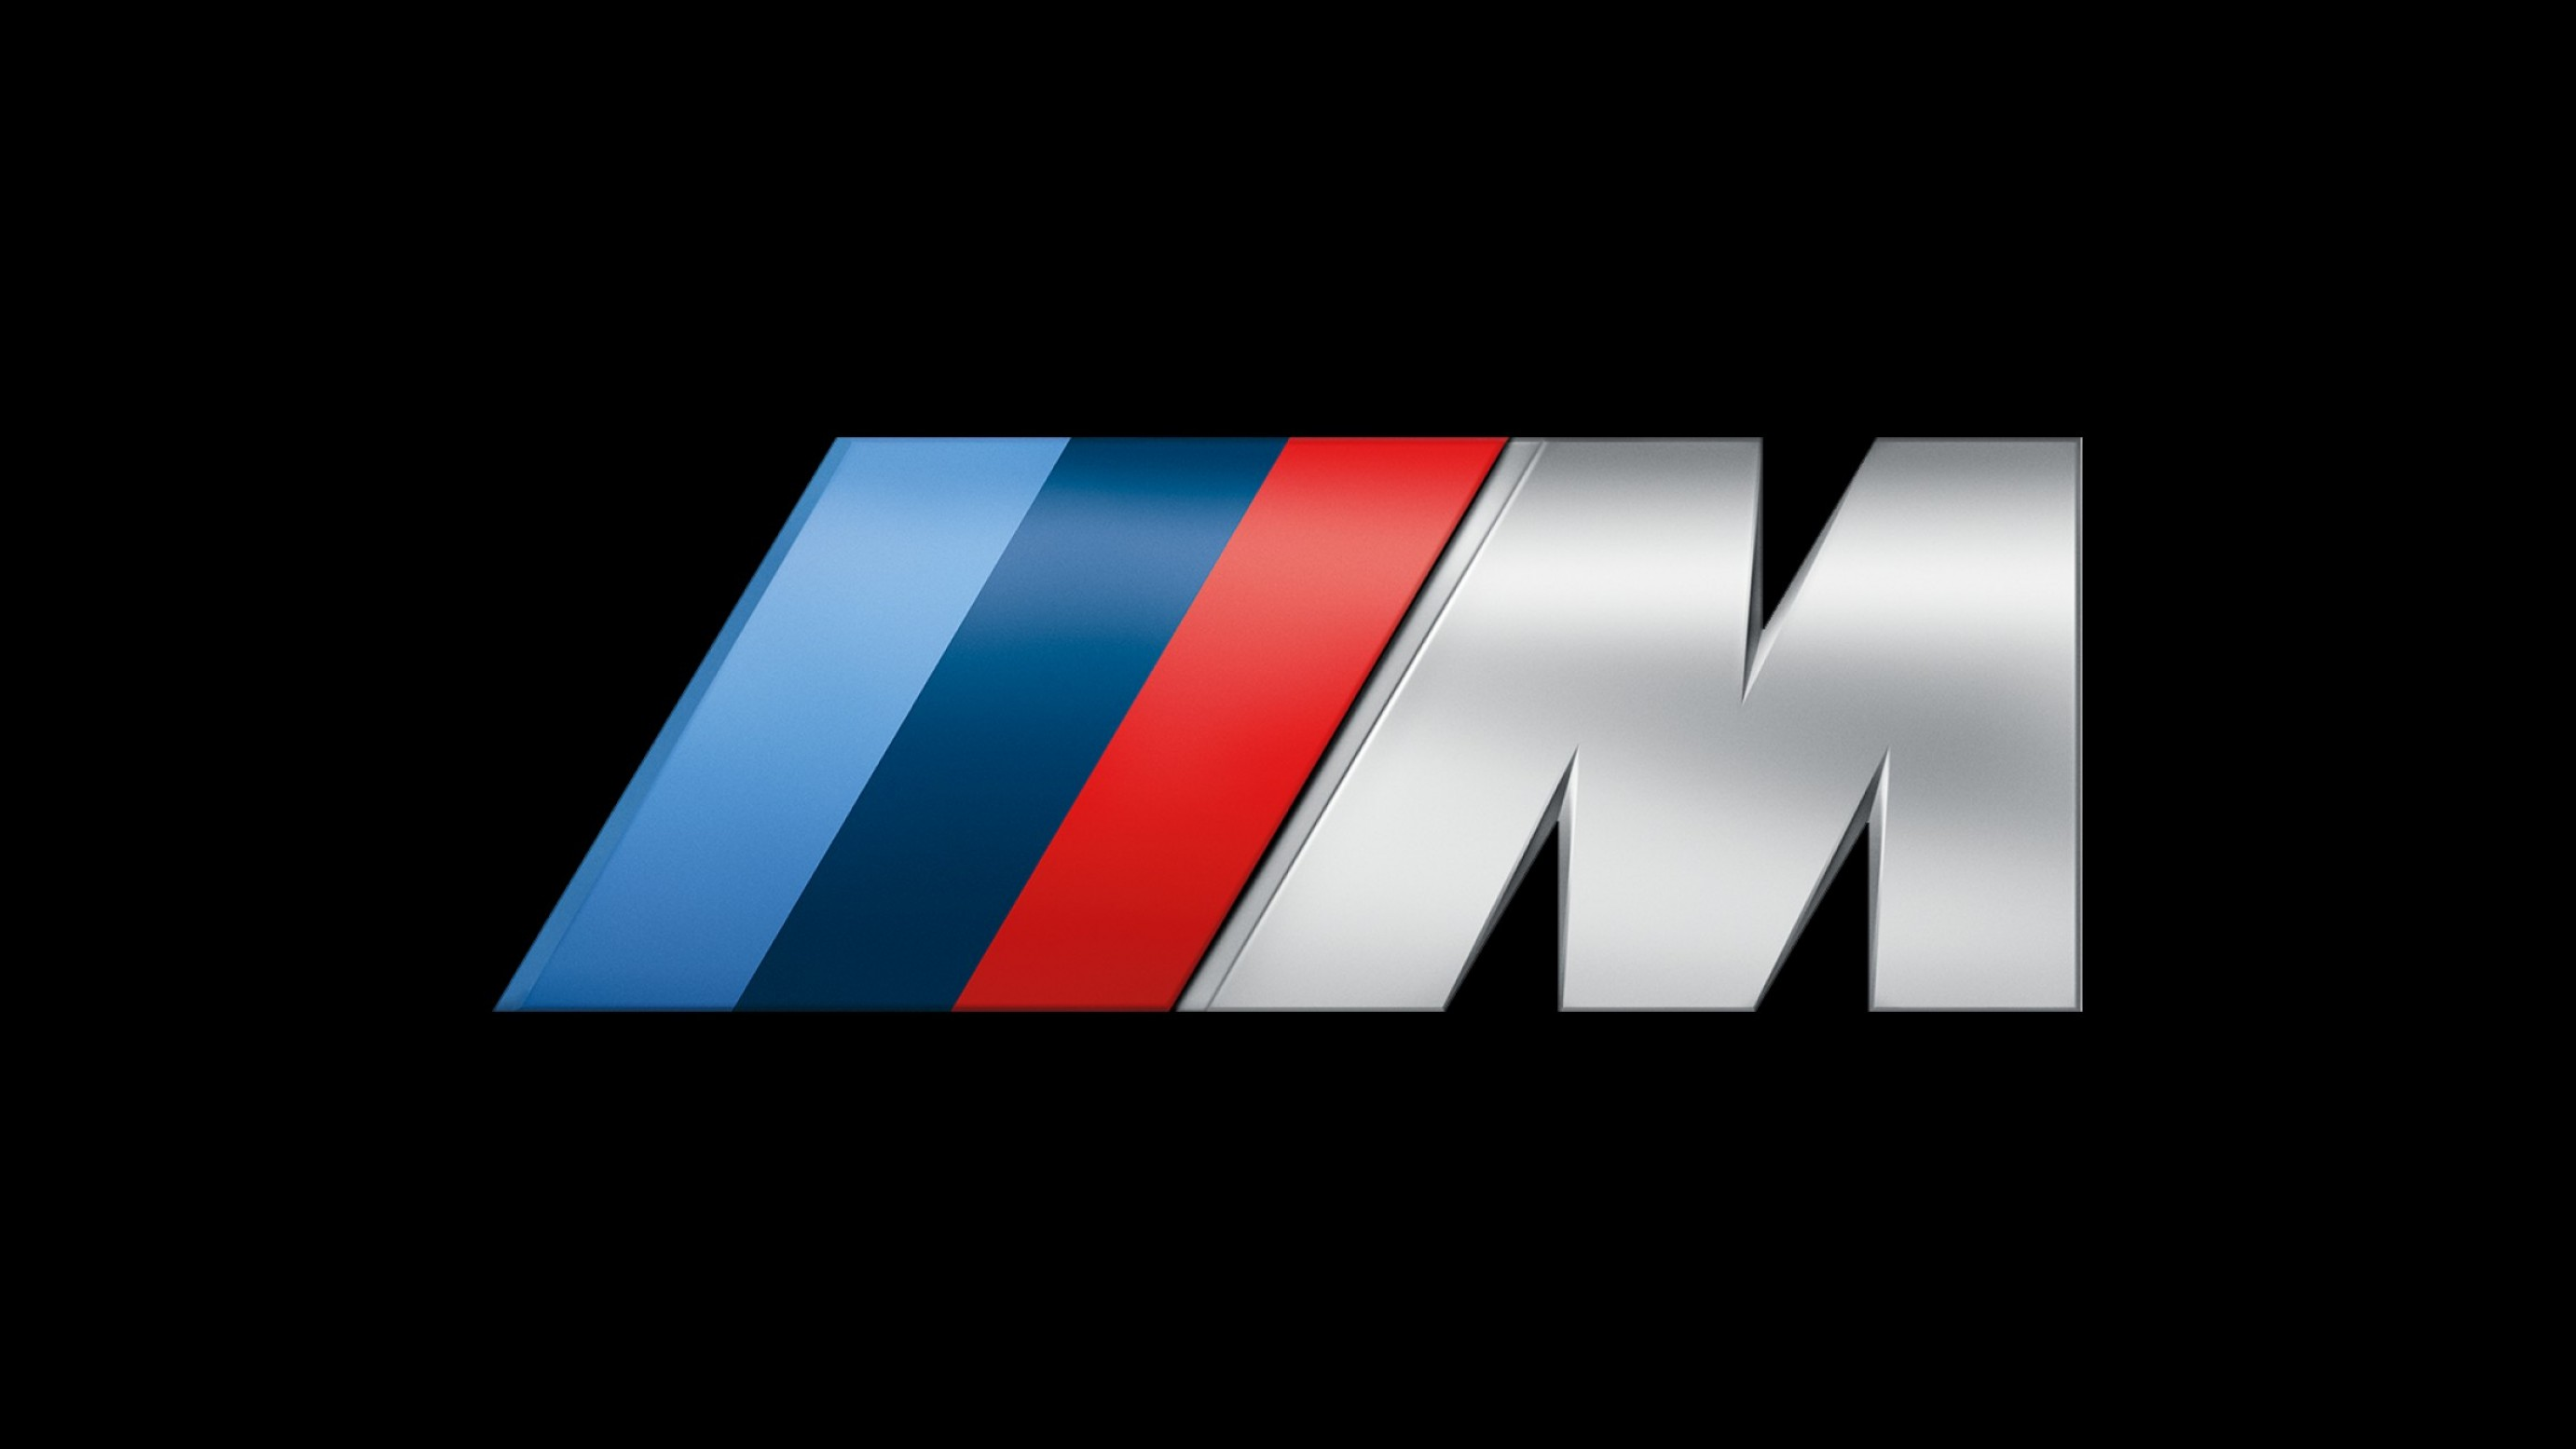 Bmw M Logo Hd Png And Vector Download.